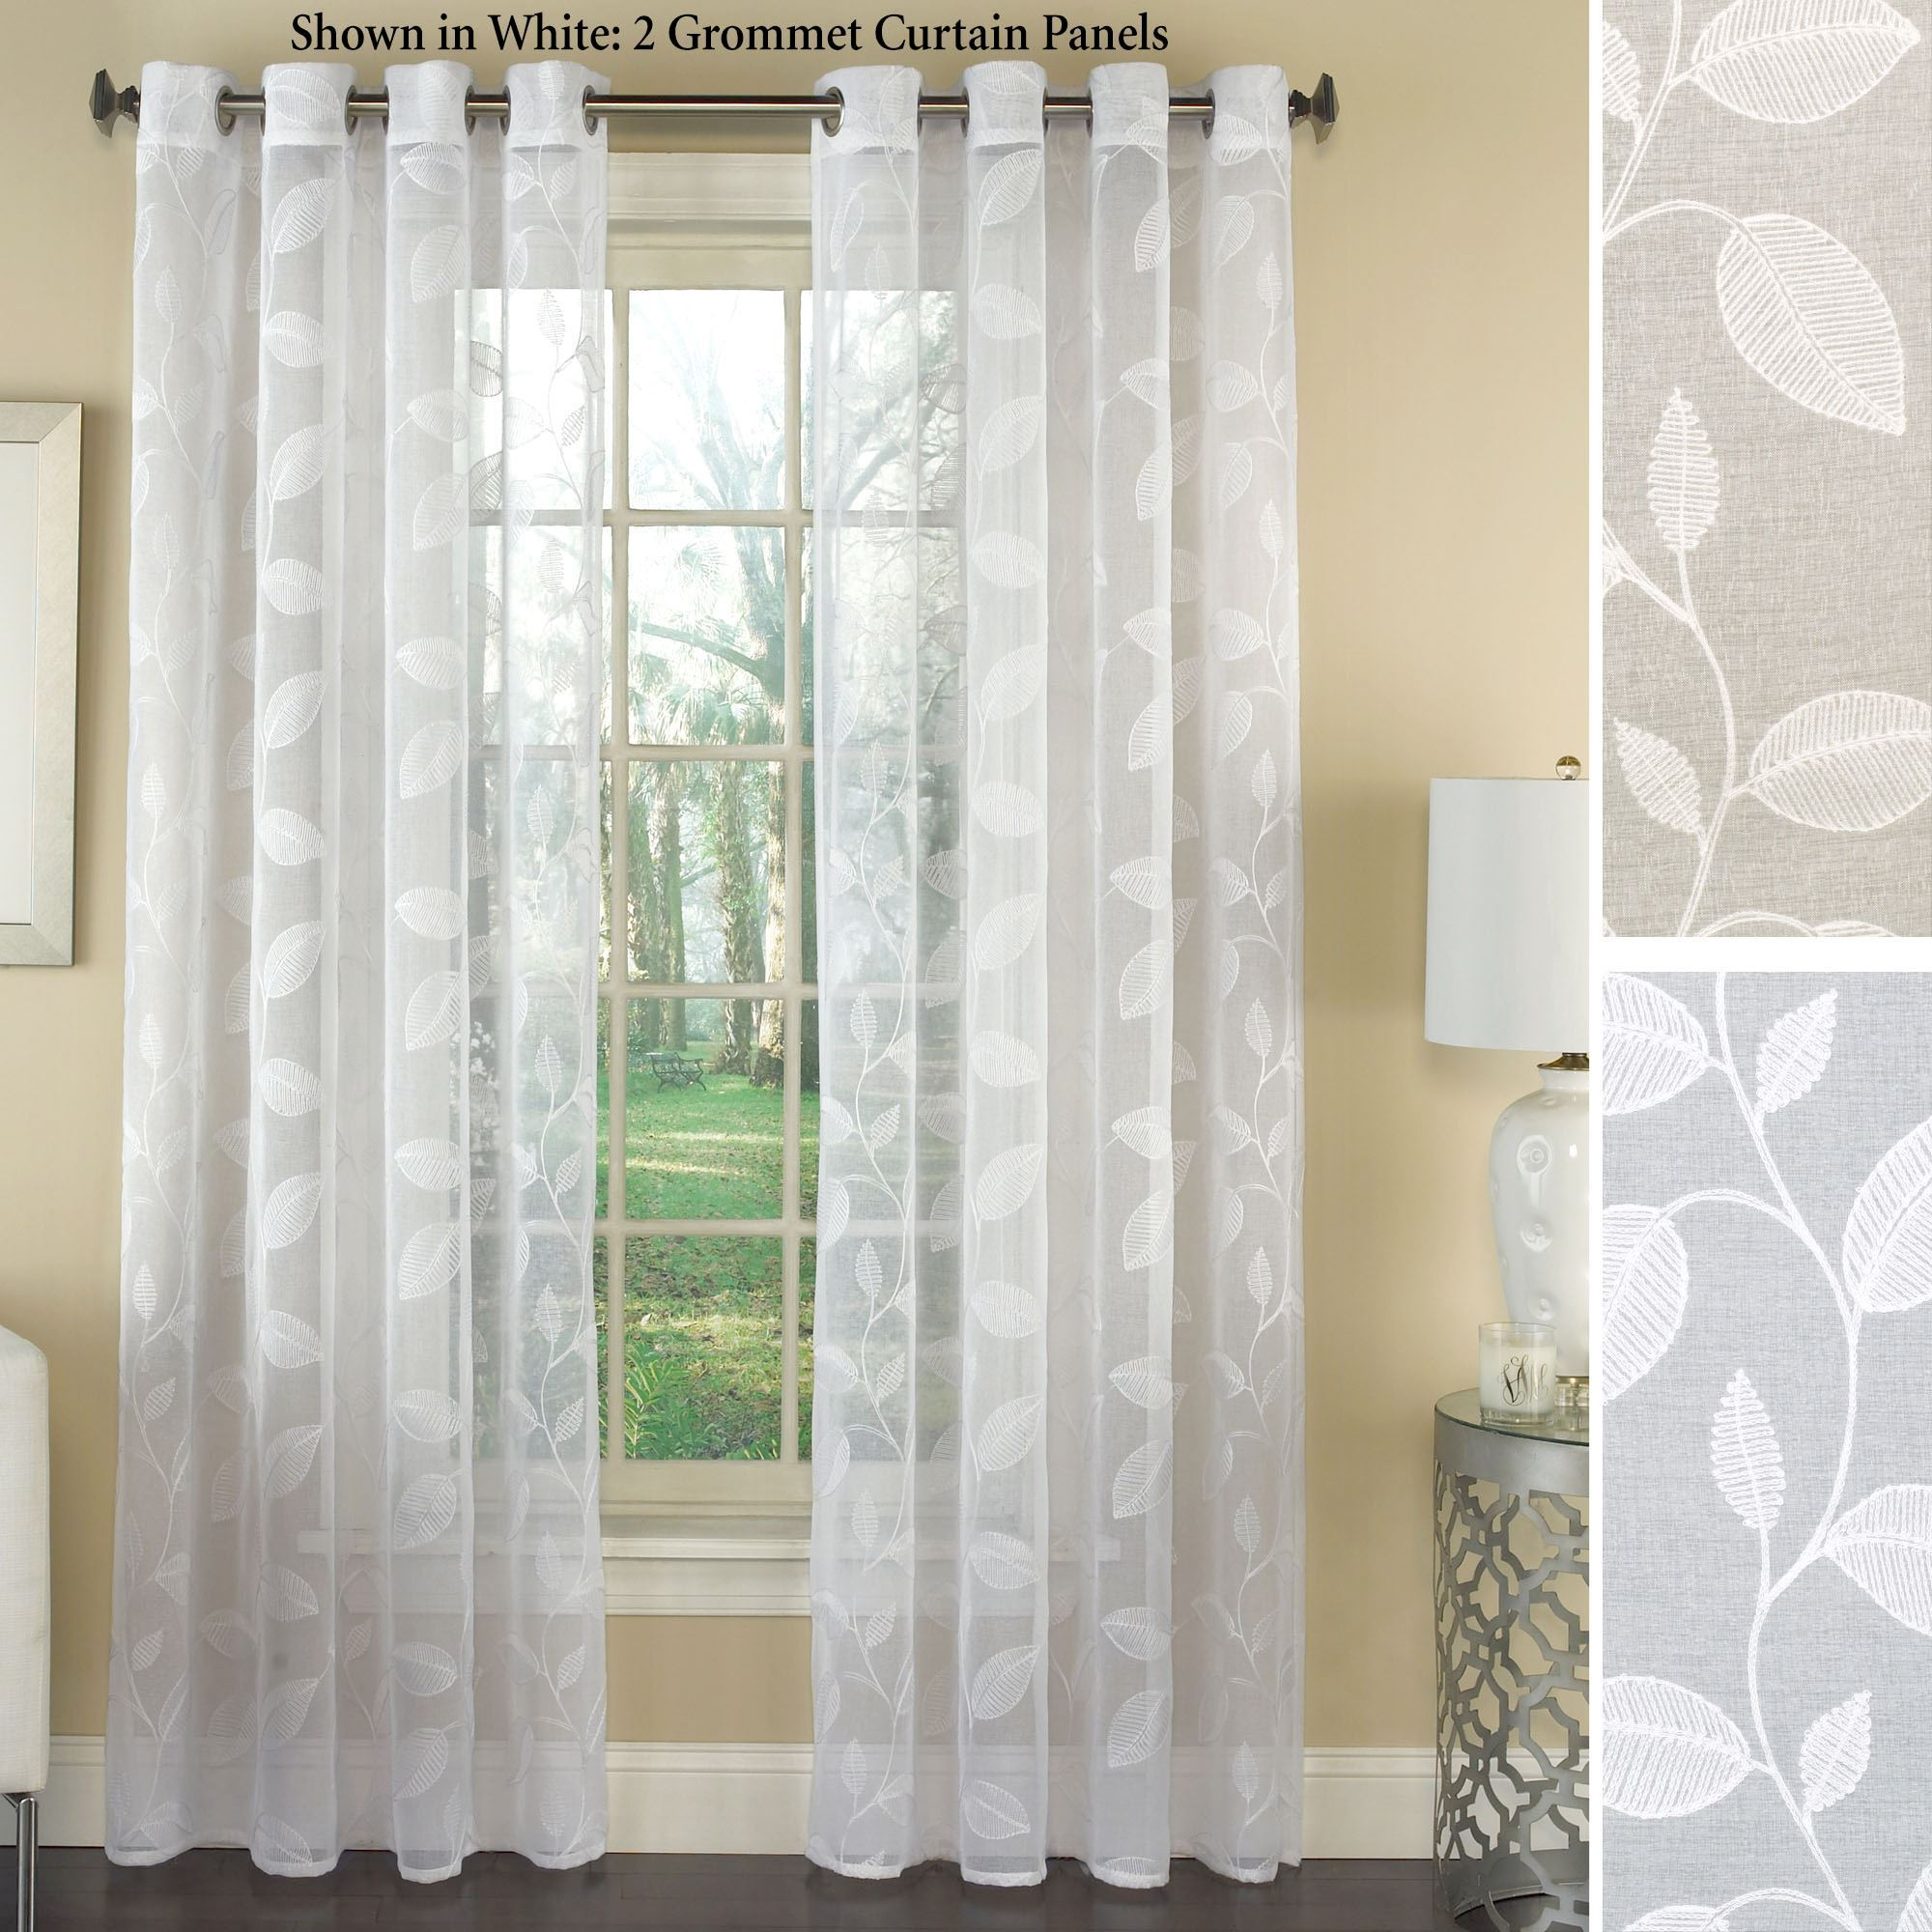 curtain panels avery grommet curtain panel. click to expand QPBIVYL